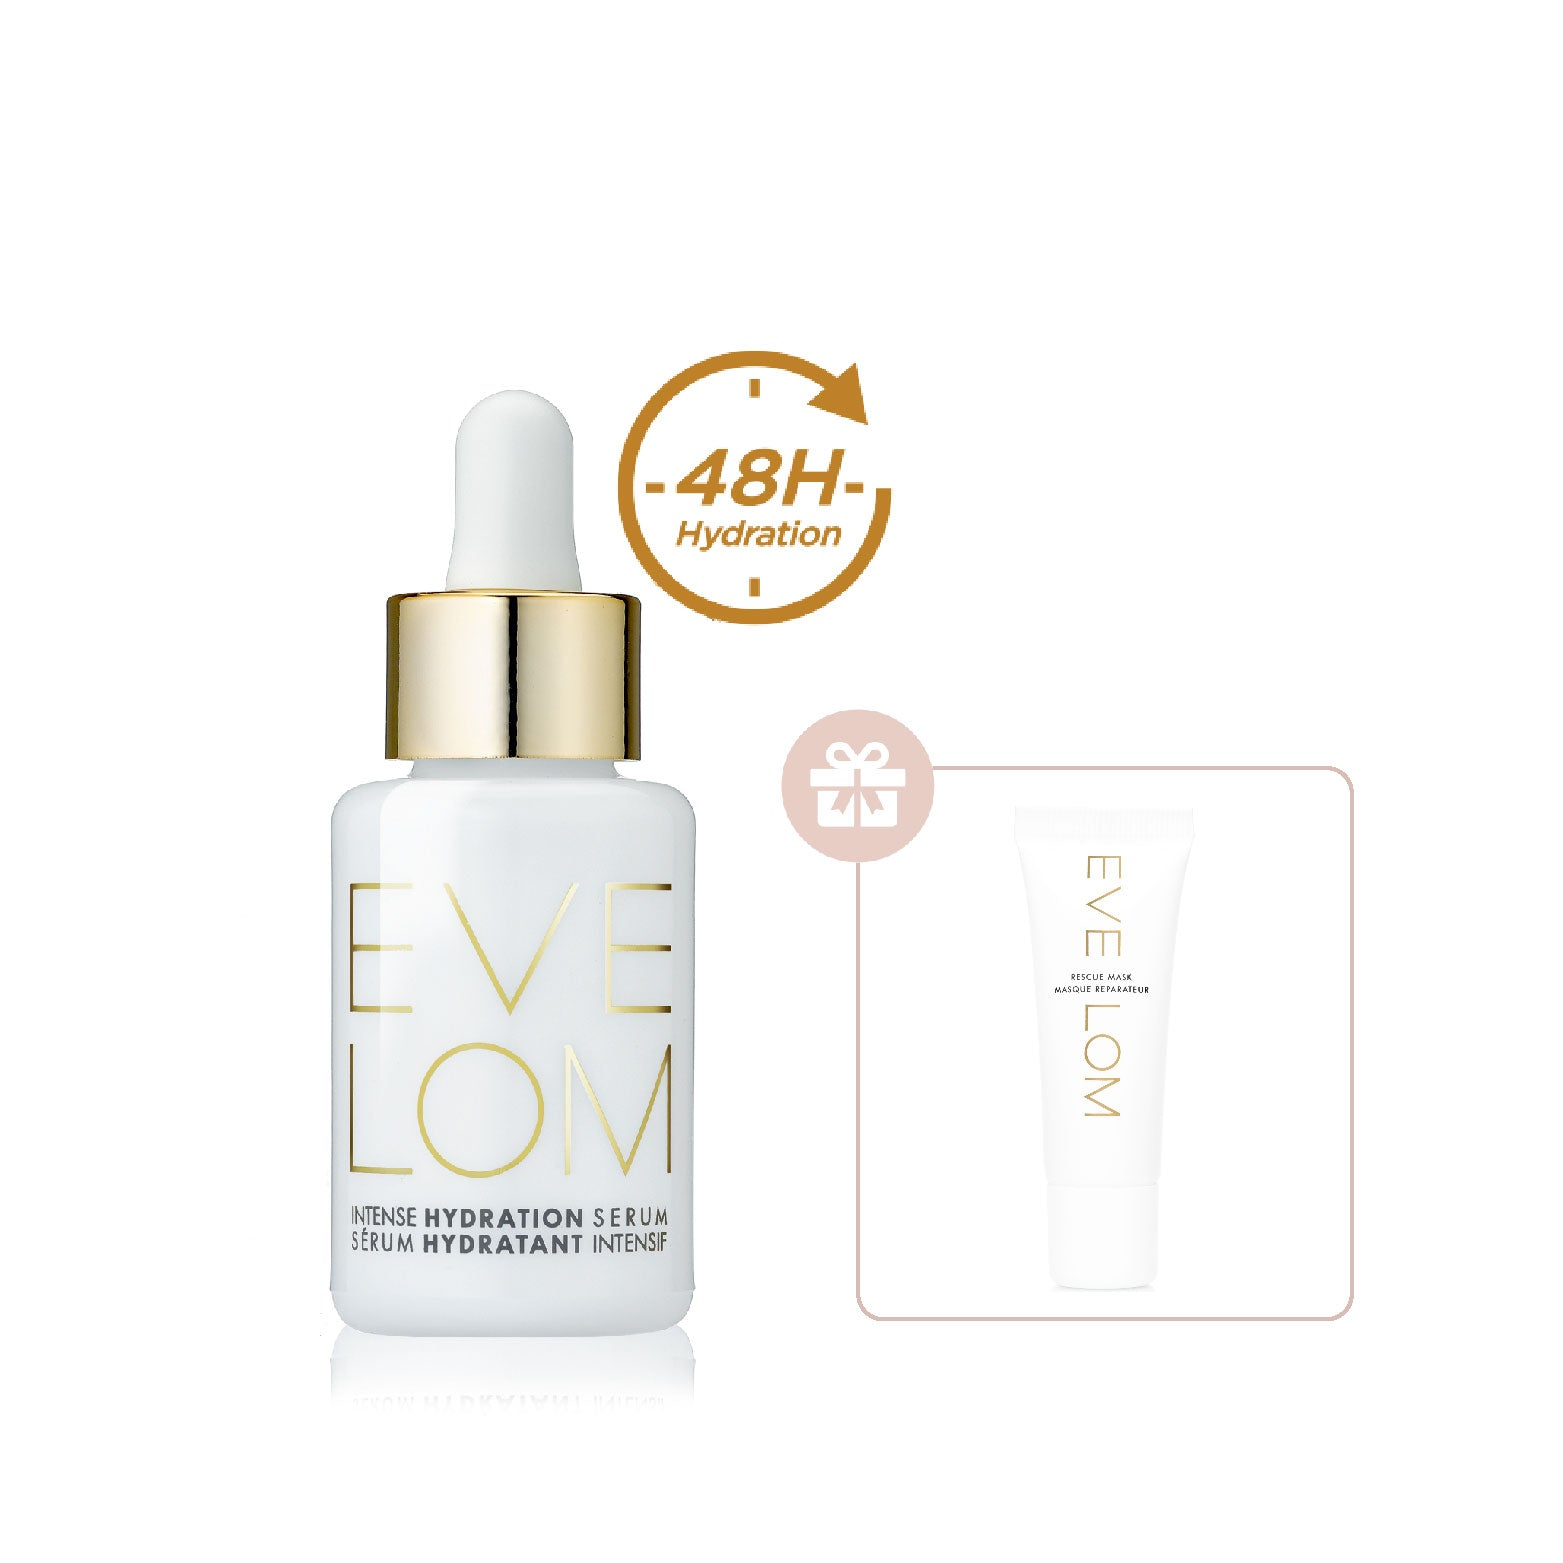 EVE LOM Intense Hydration Serum極緻補濕精華